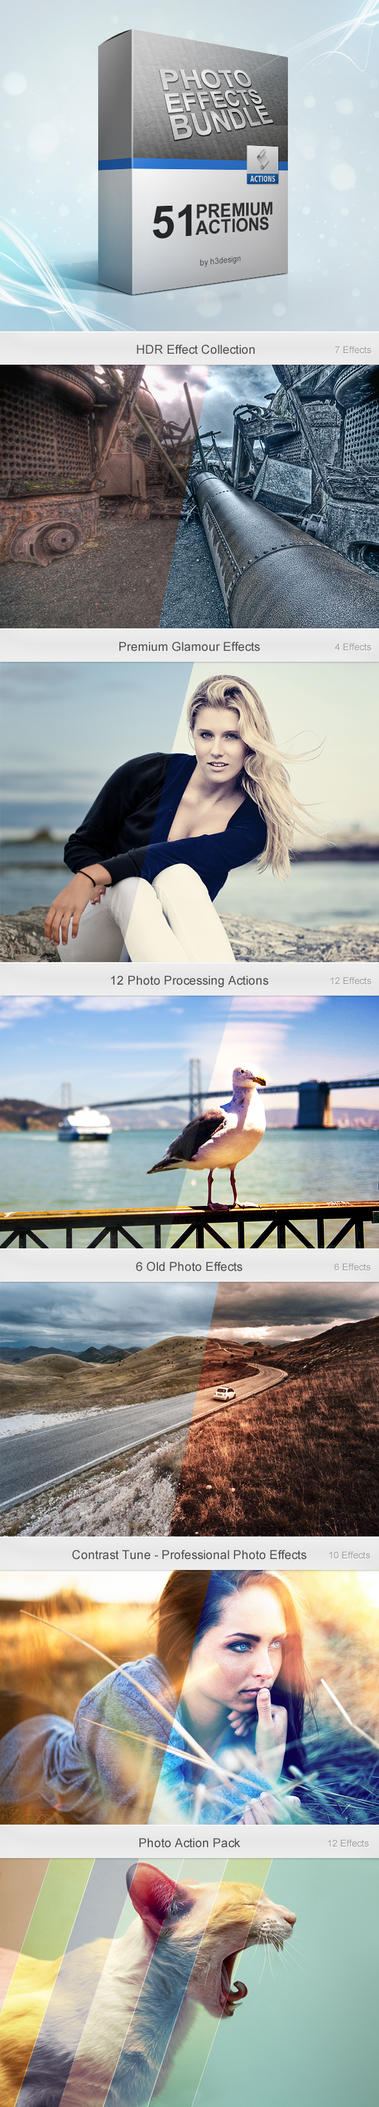 Photo Effects Bundle by h3design